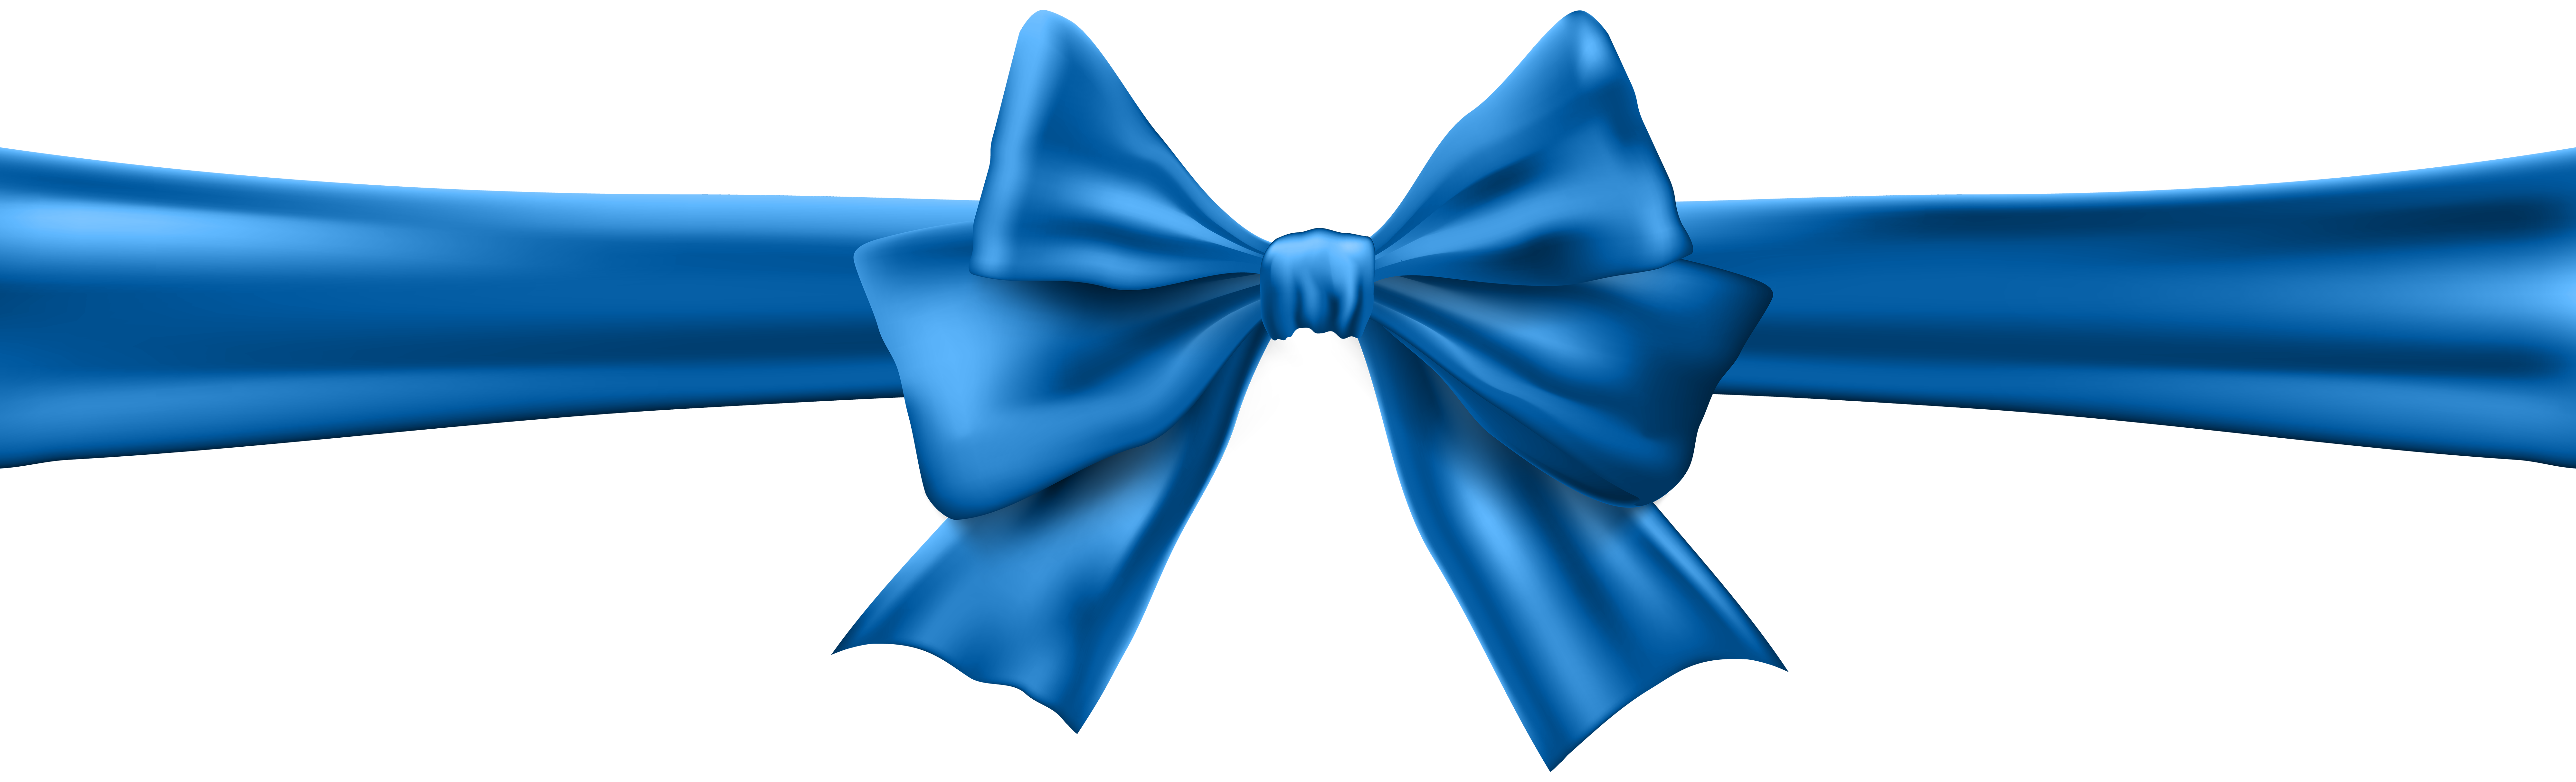 Blue Bow with Ribbon Clip Art Image.